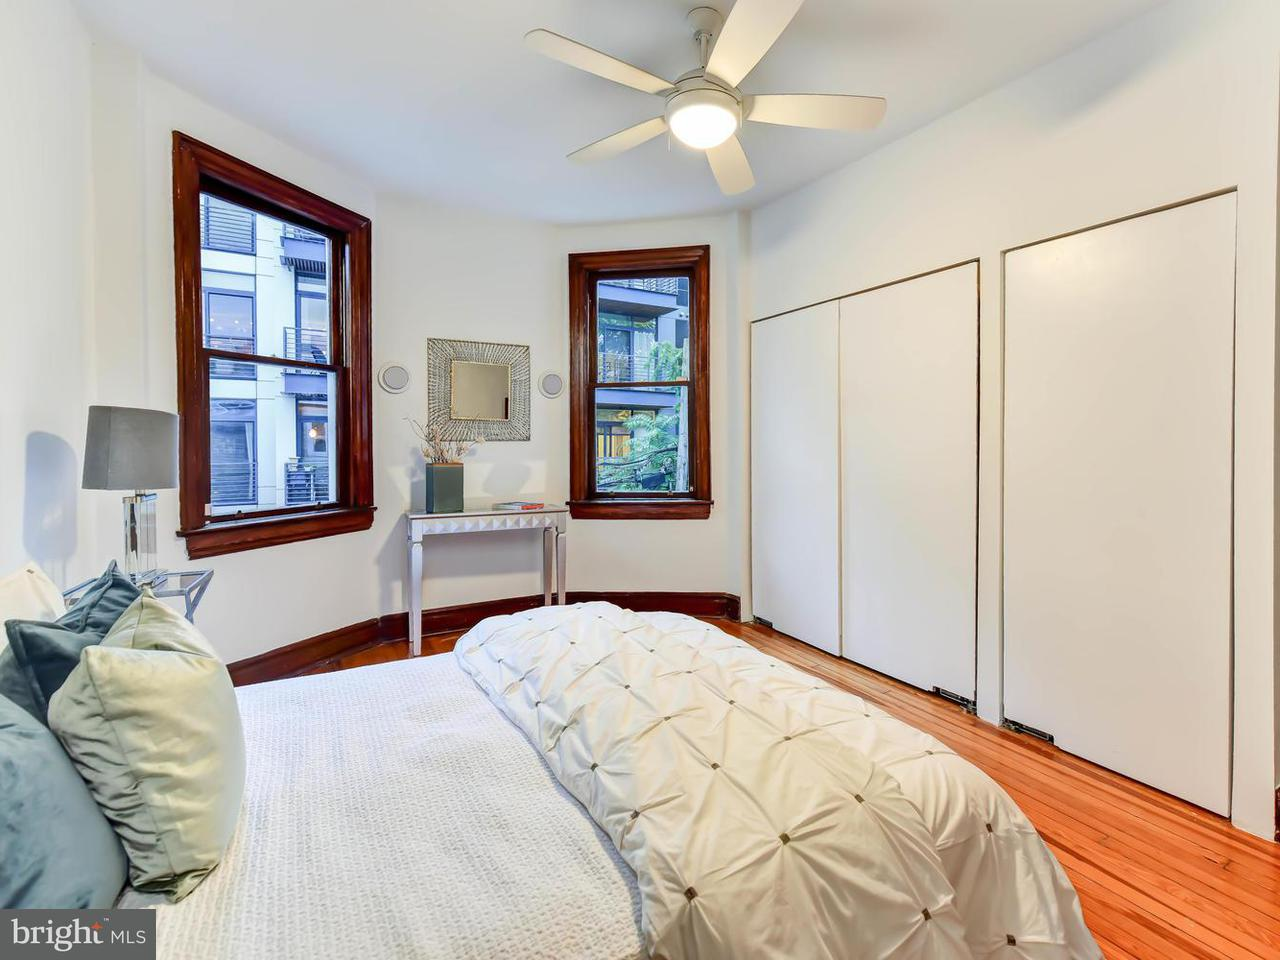 Additional photo for property listing at 1406 Meridian Pl Nw #A 1406 Meridian Pl Nw #A Washington, District Of Columbia 20010 Vereinigte Staaten